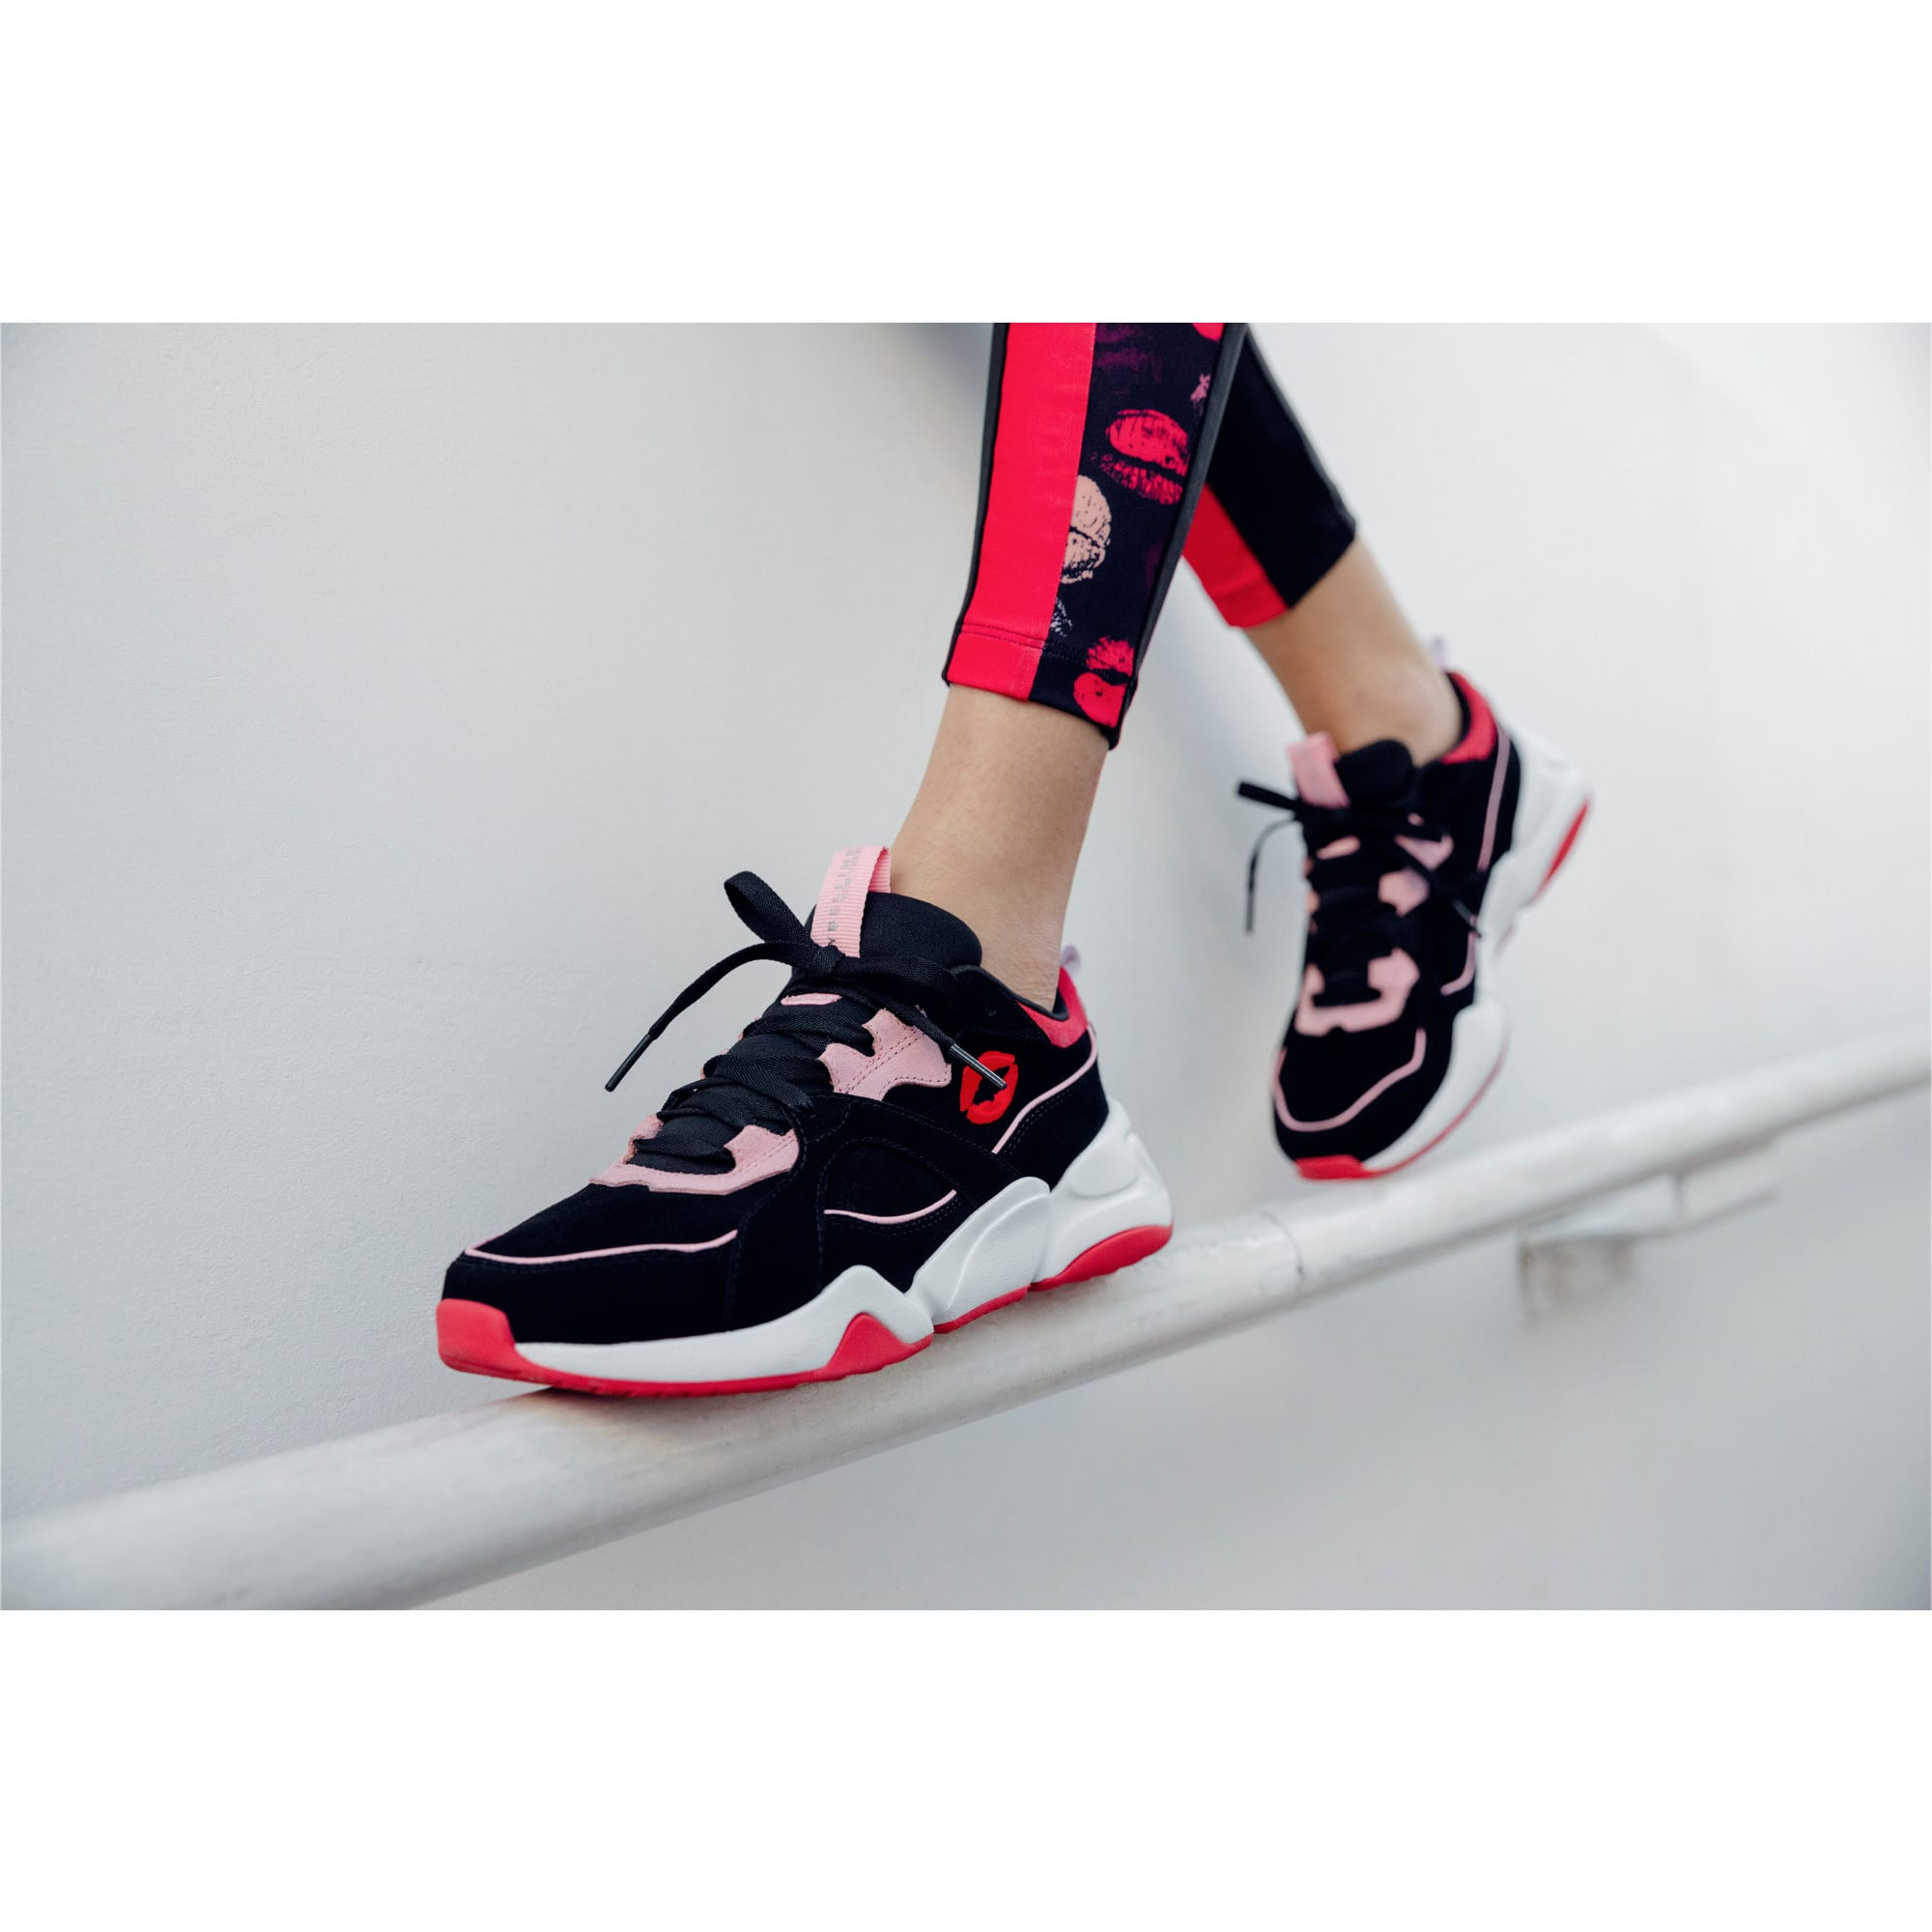 Thumbnail 8 of PUMA x MAYBELLINE Nova Women's Trainers, Puma Black-Candy Pink, medium